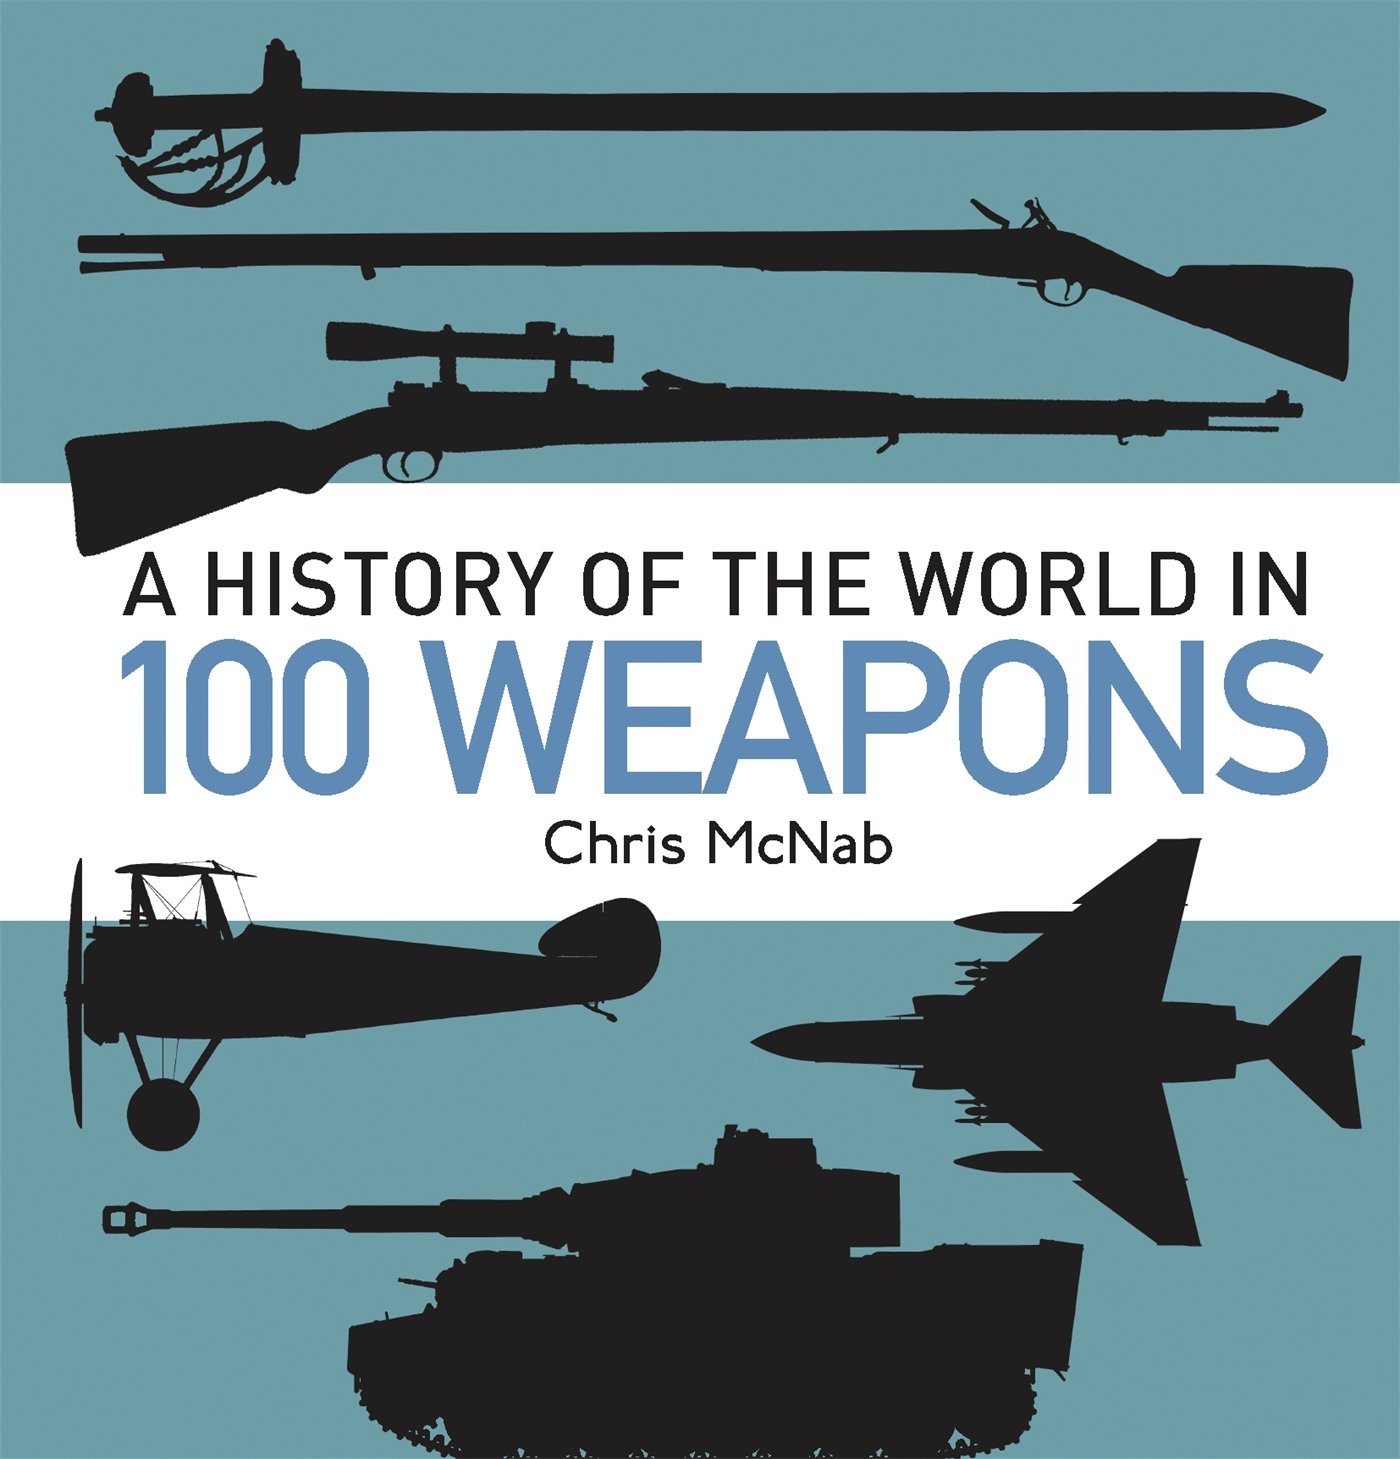 A History of the World in 100 Weapons (General Military) PDF